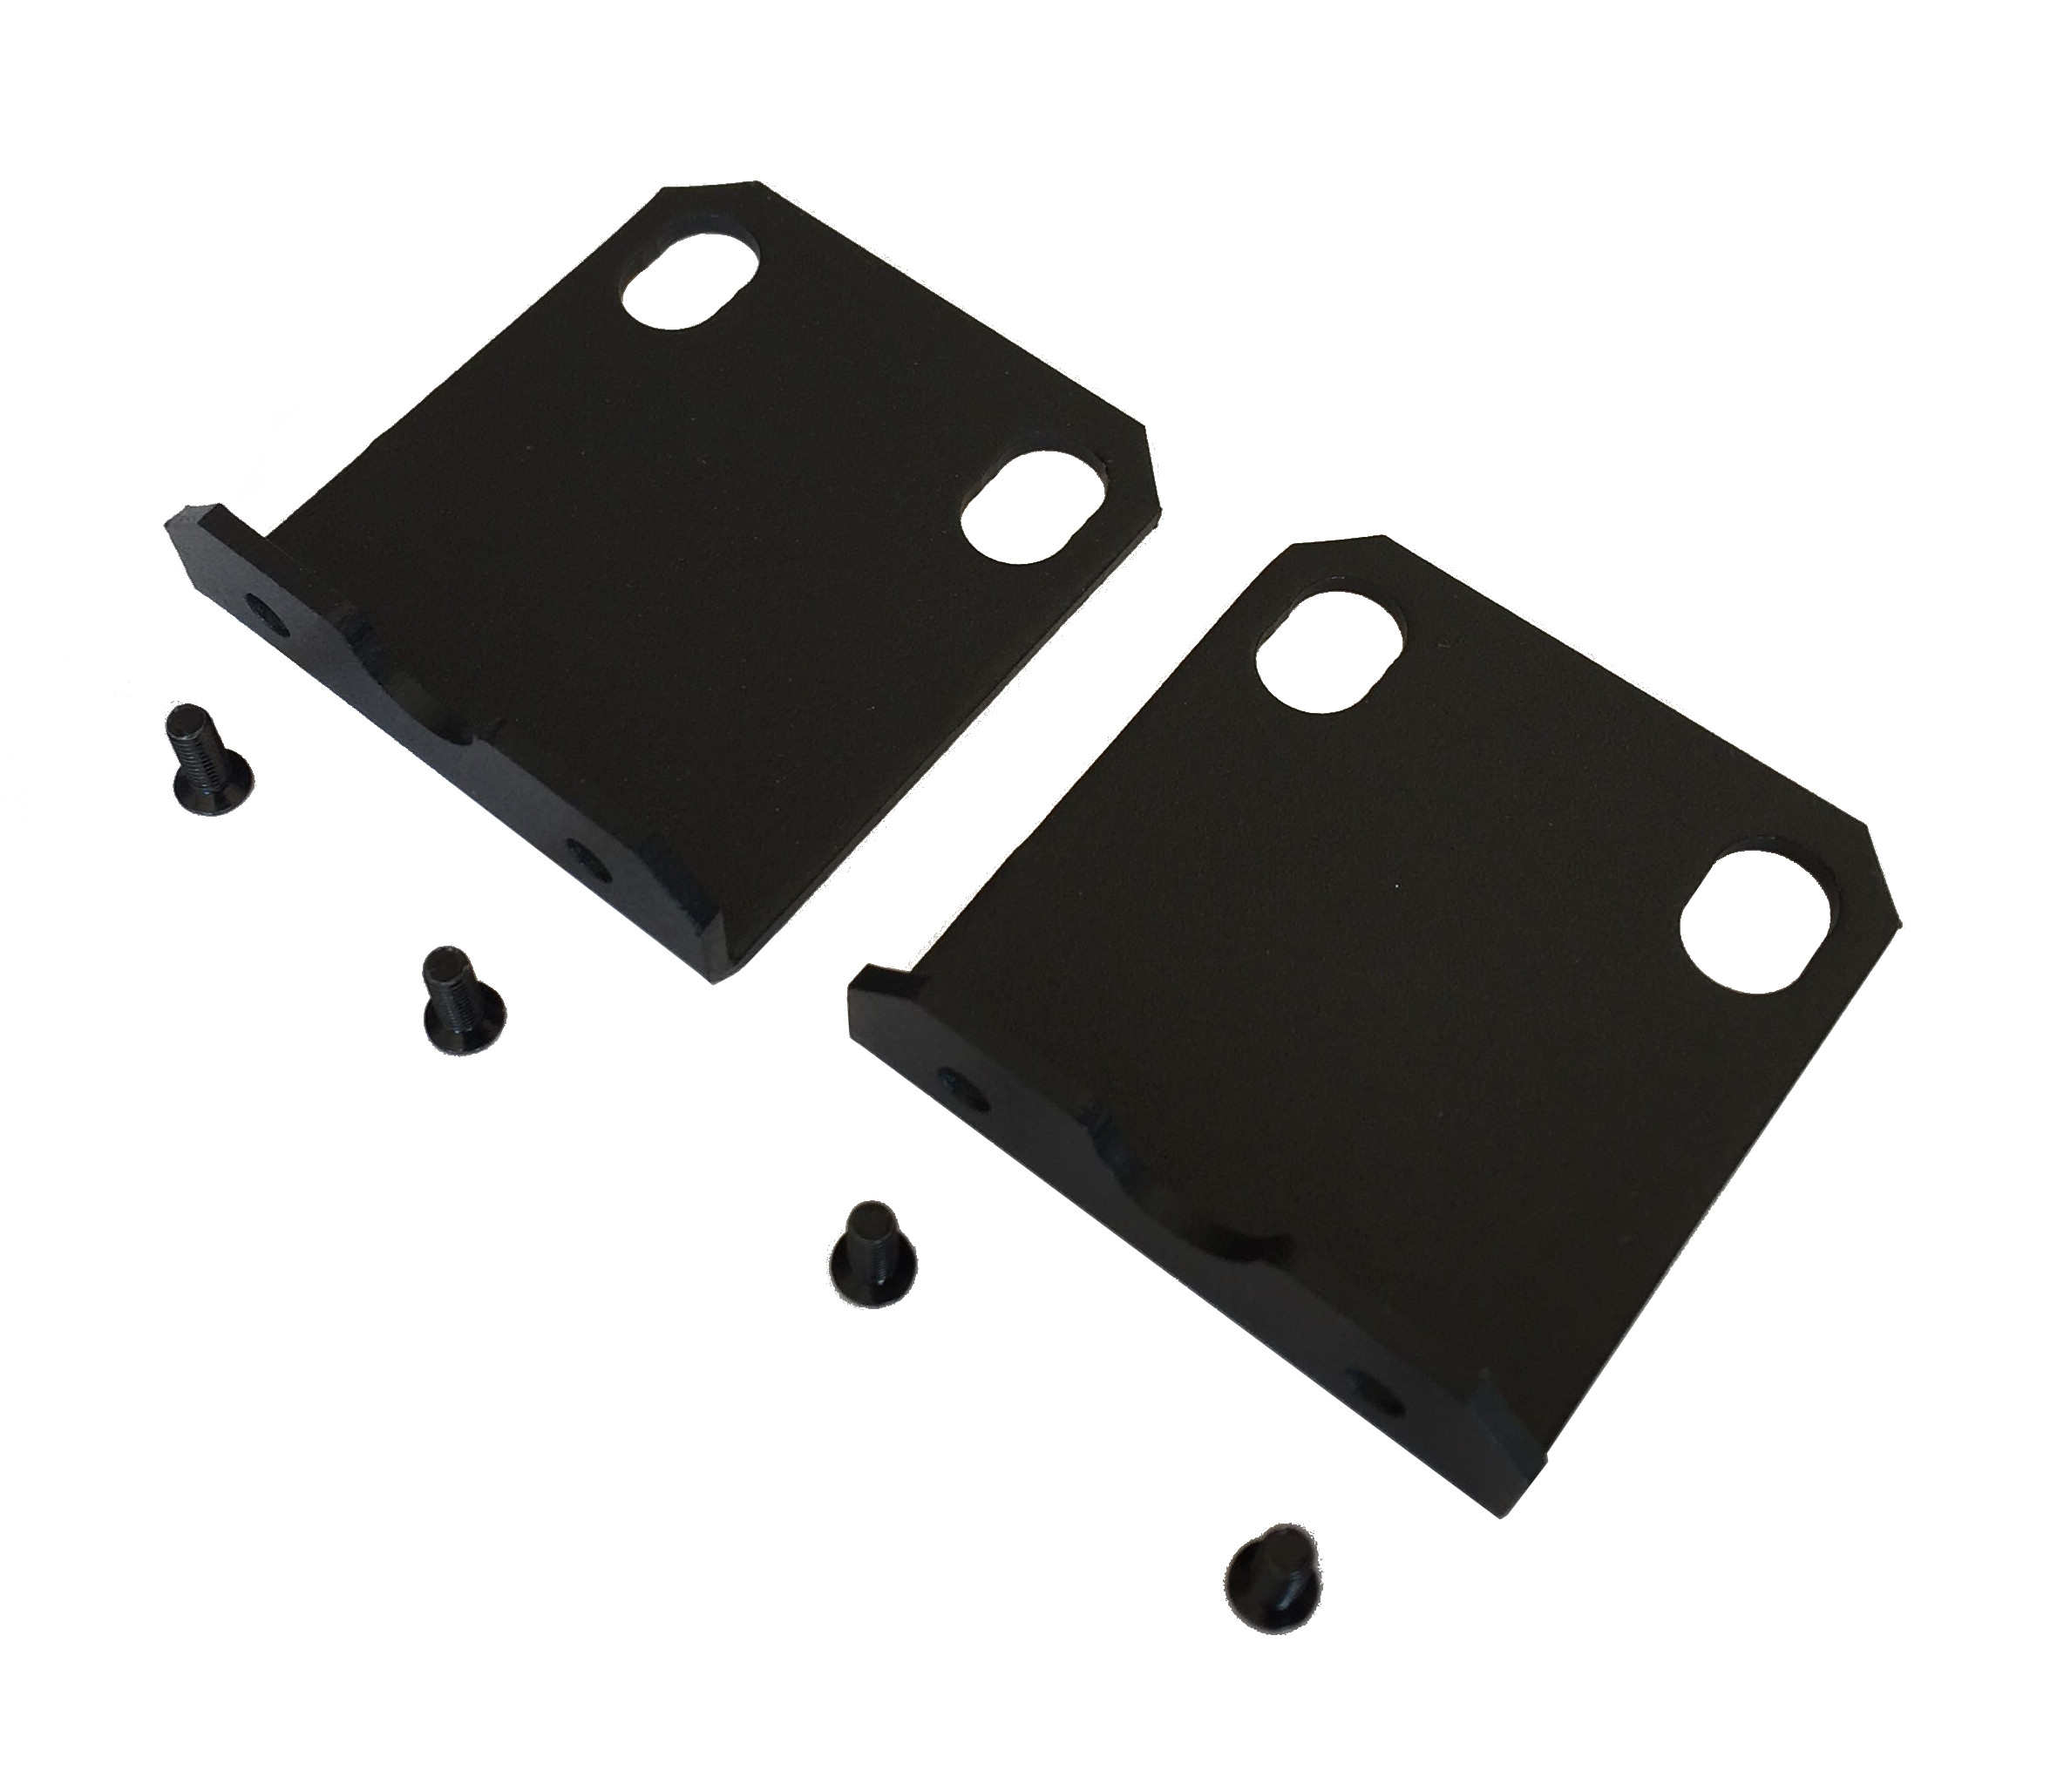 Rack Mount Ears (1U) for Admiral 8, Admiral 16, Corporal 8 & Corporal 16